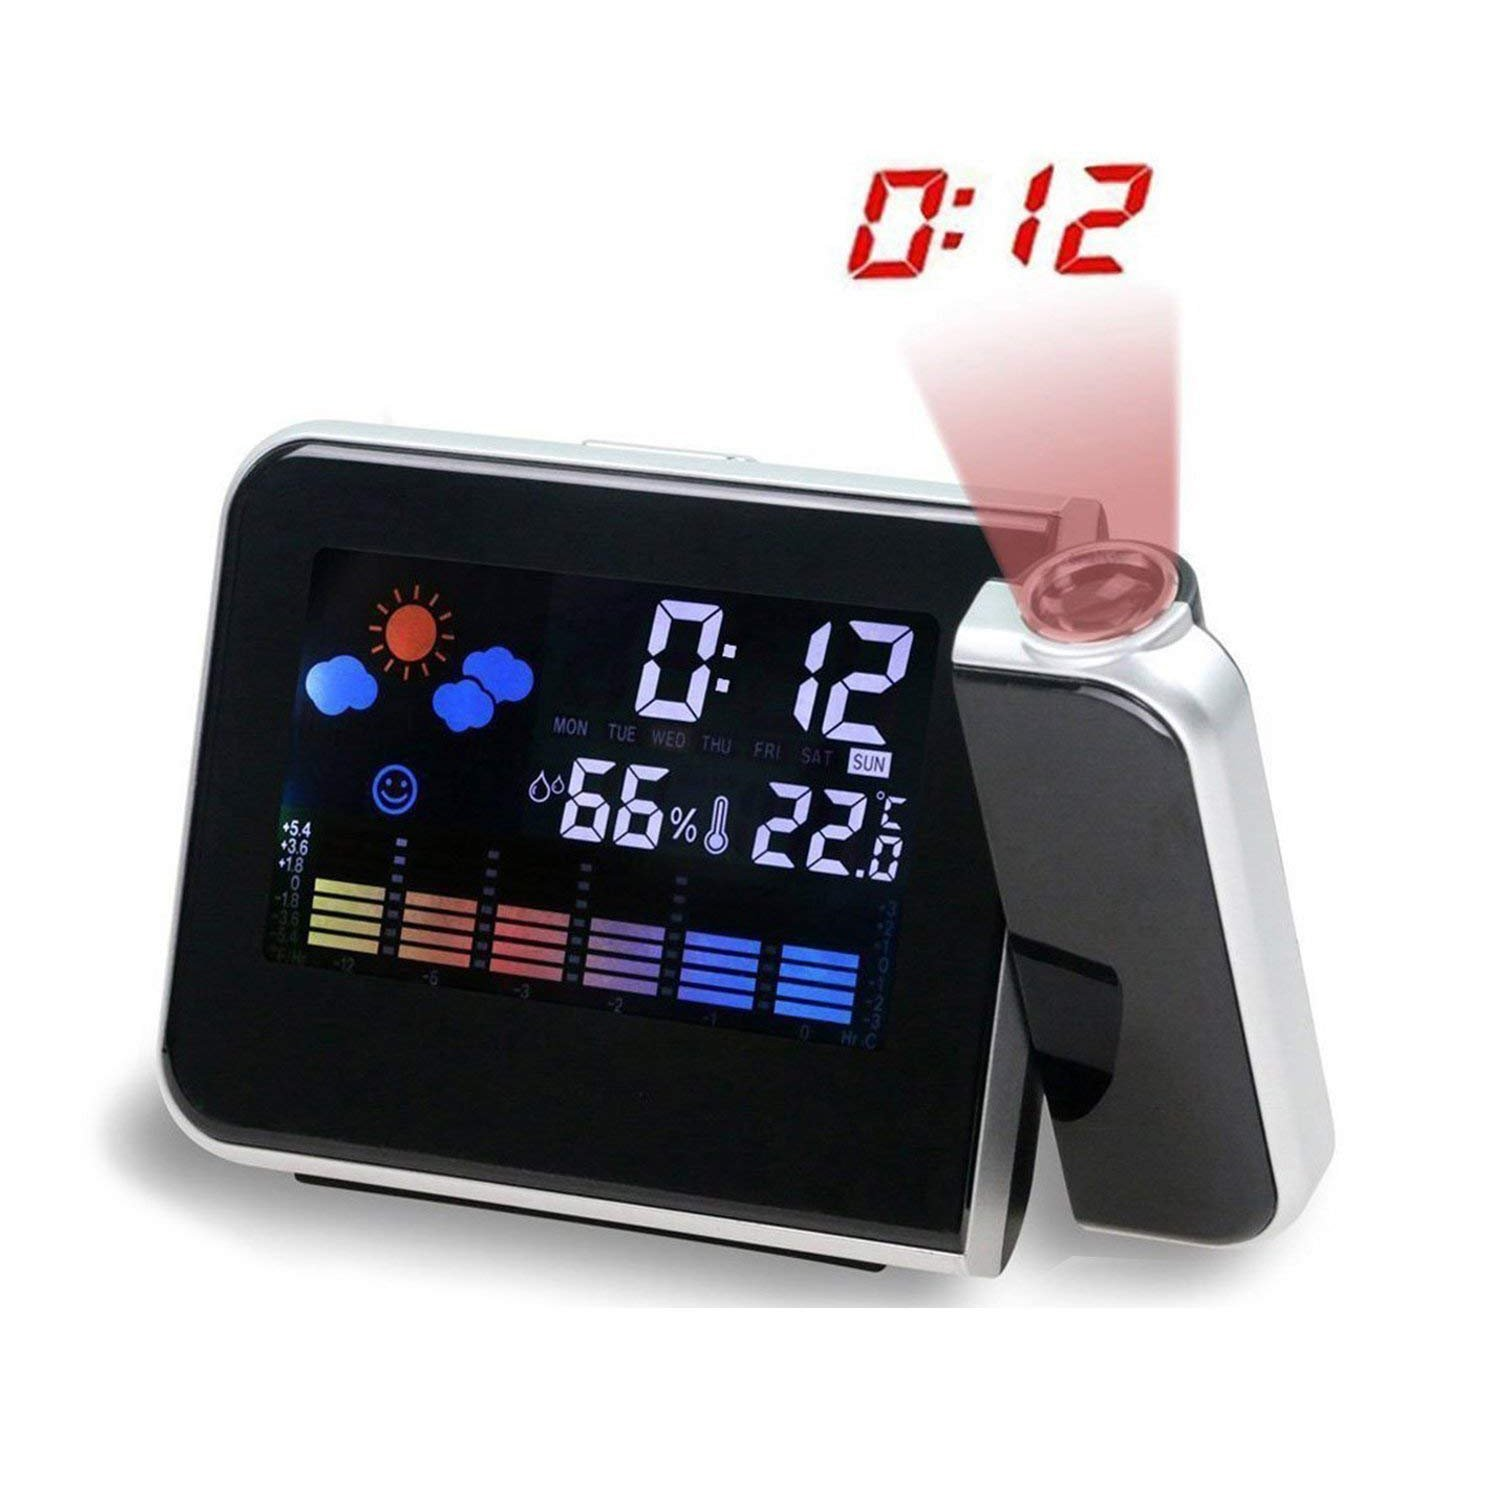 MUTANG Multi-function Digital Projection Alarm Clock With Weather Station Electronic Desk Clock Bedside Wake Up Clock Black, White (Color : Black)